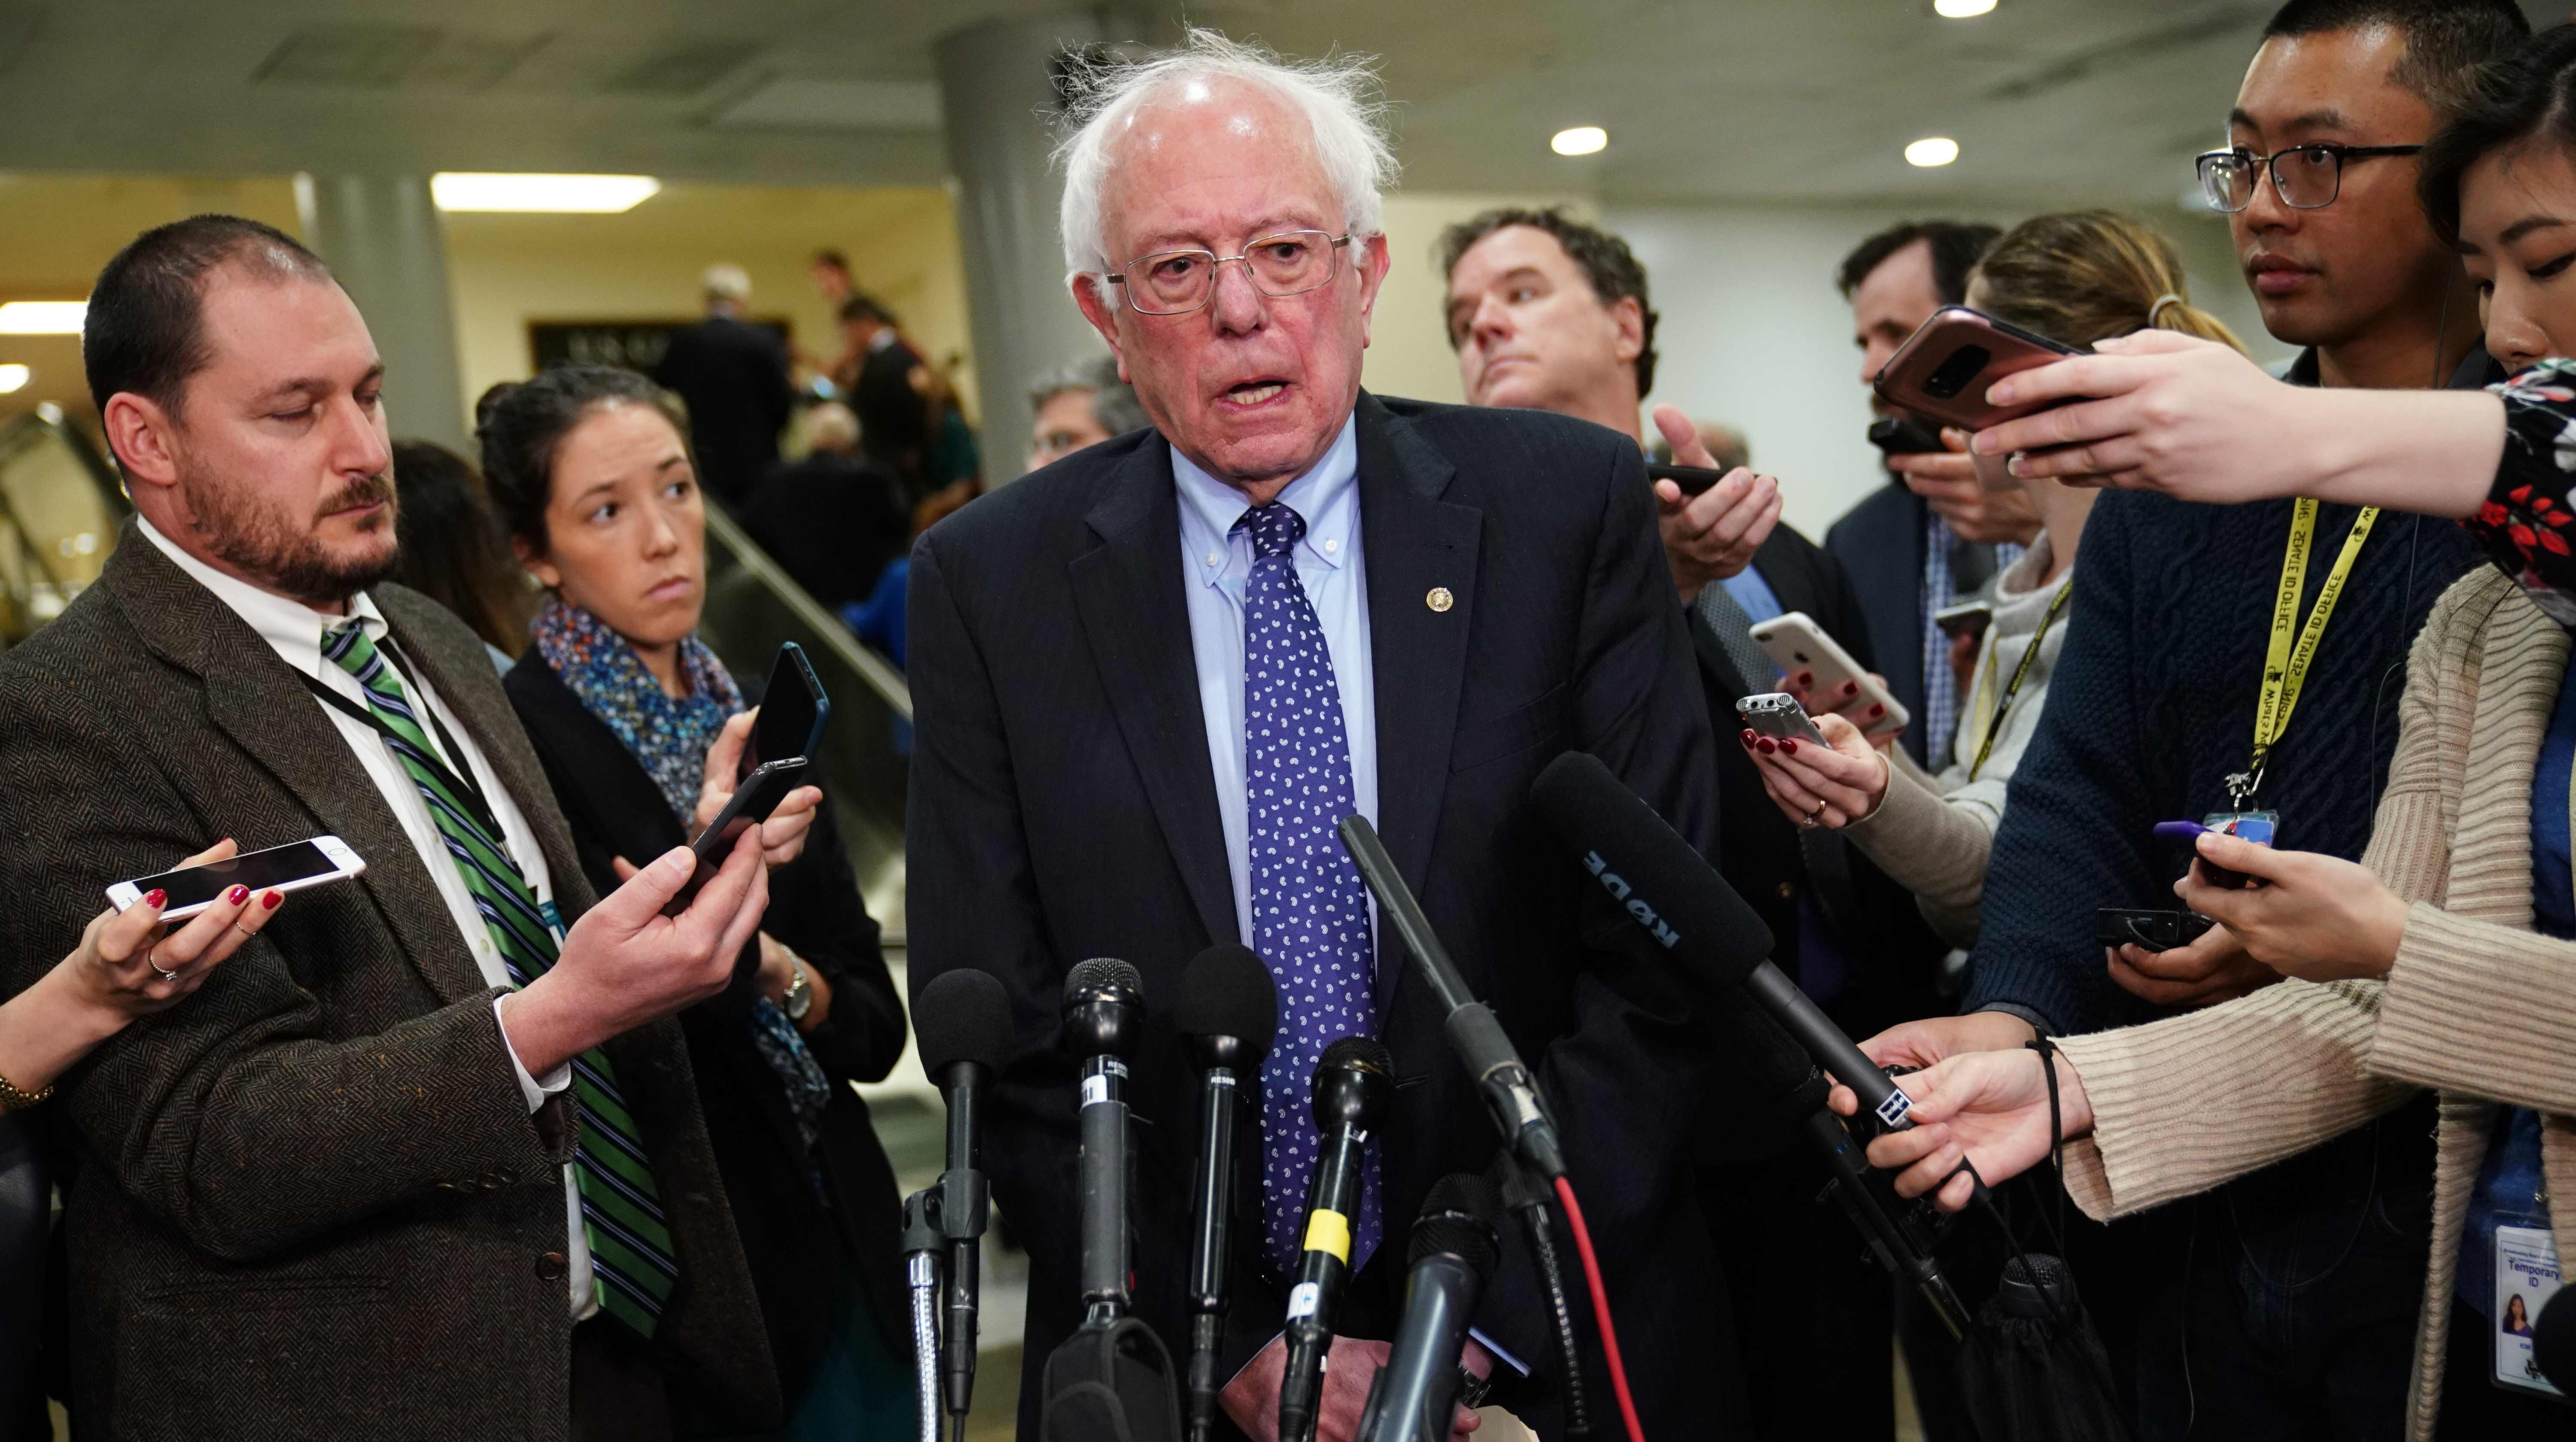 Sen. Bernie Sanders (I-VT) speaks to reporters at the US Capitol on Nov. 28, 2018.